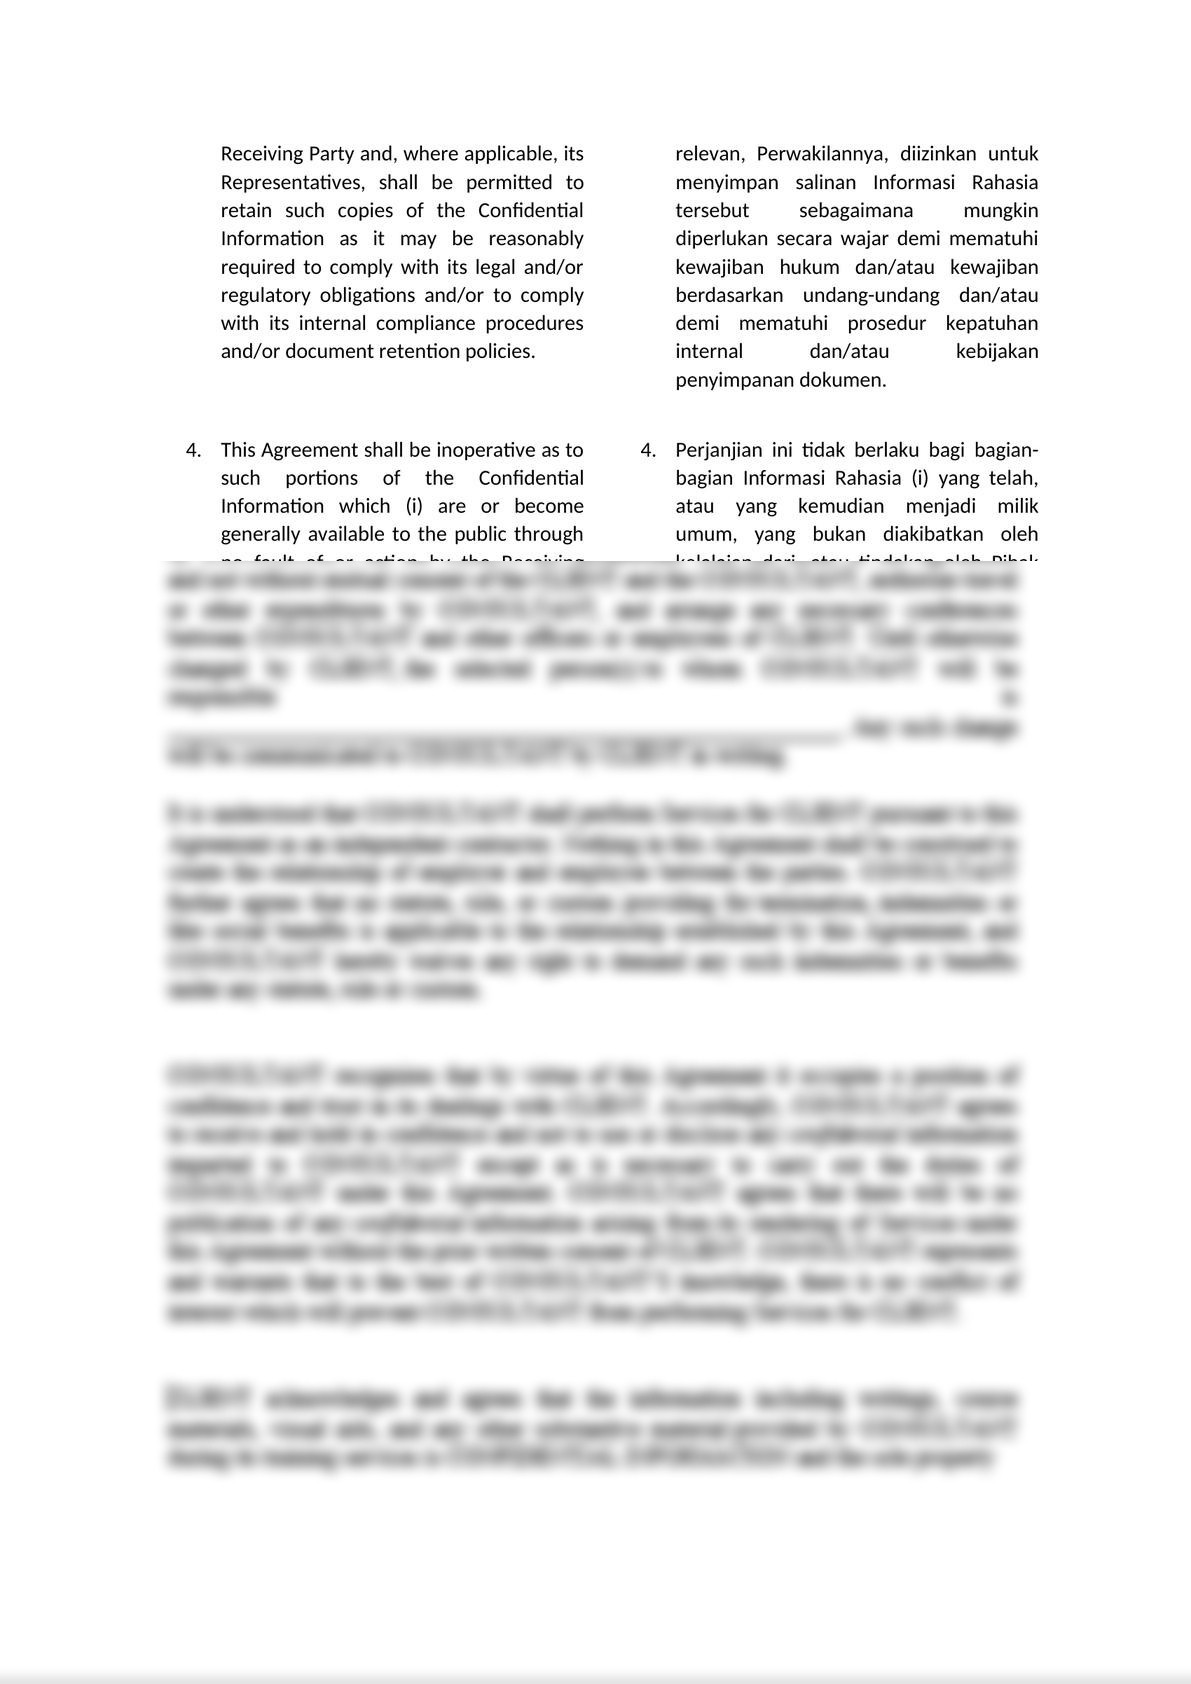 MUTUAL CONFIDENTIALITY AGREEMENT-3